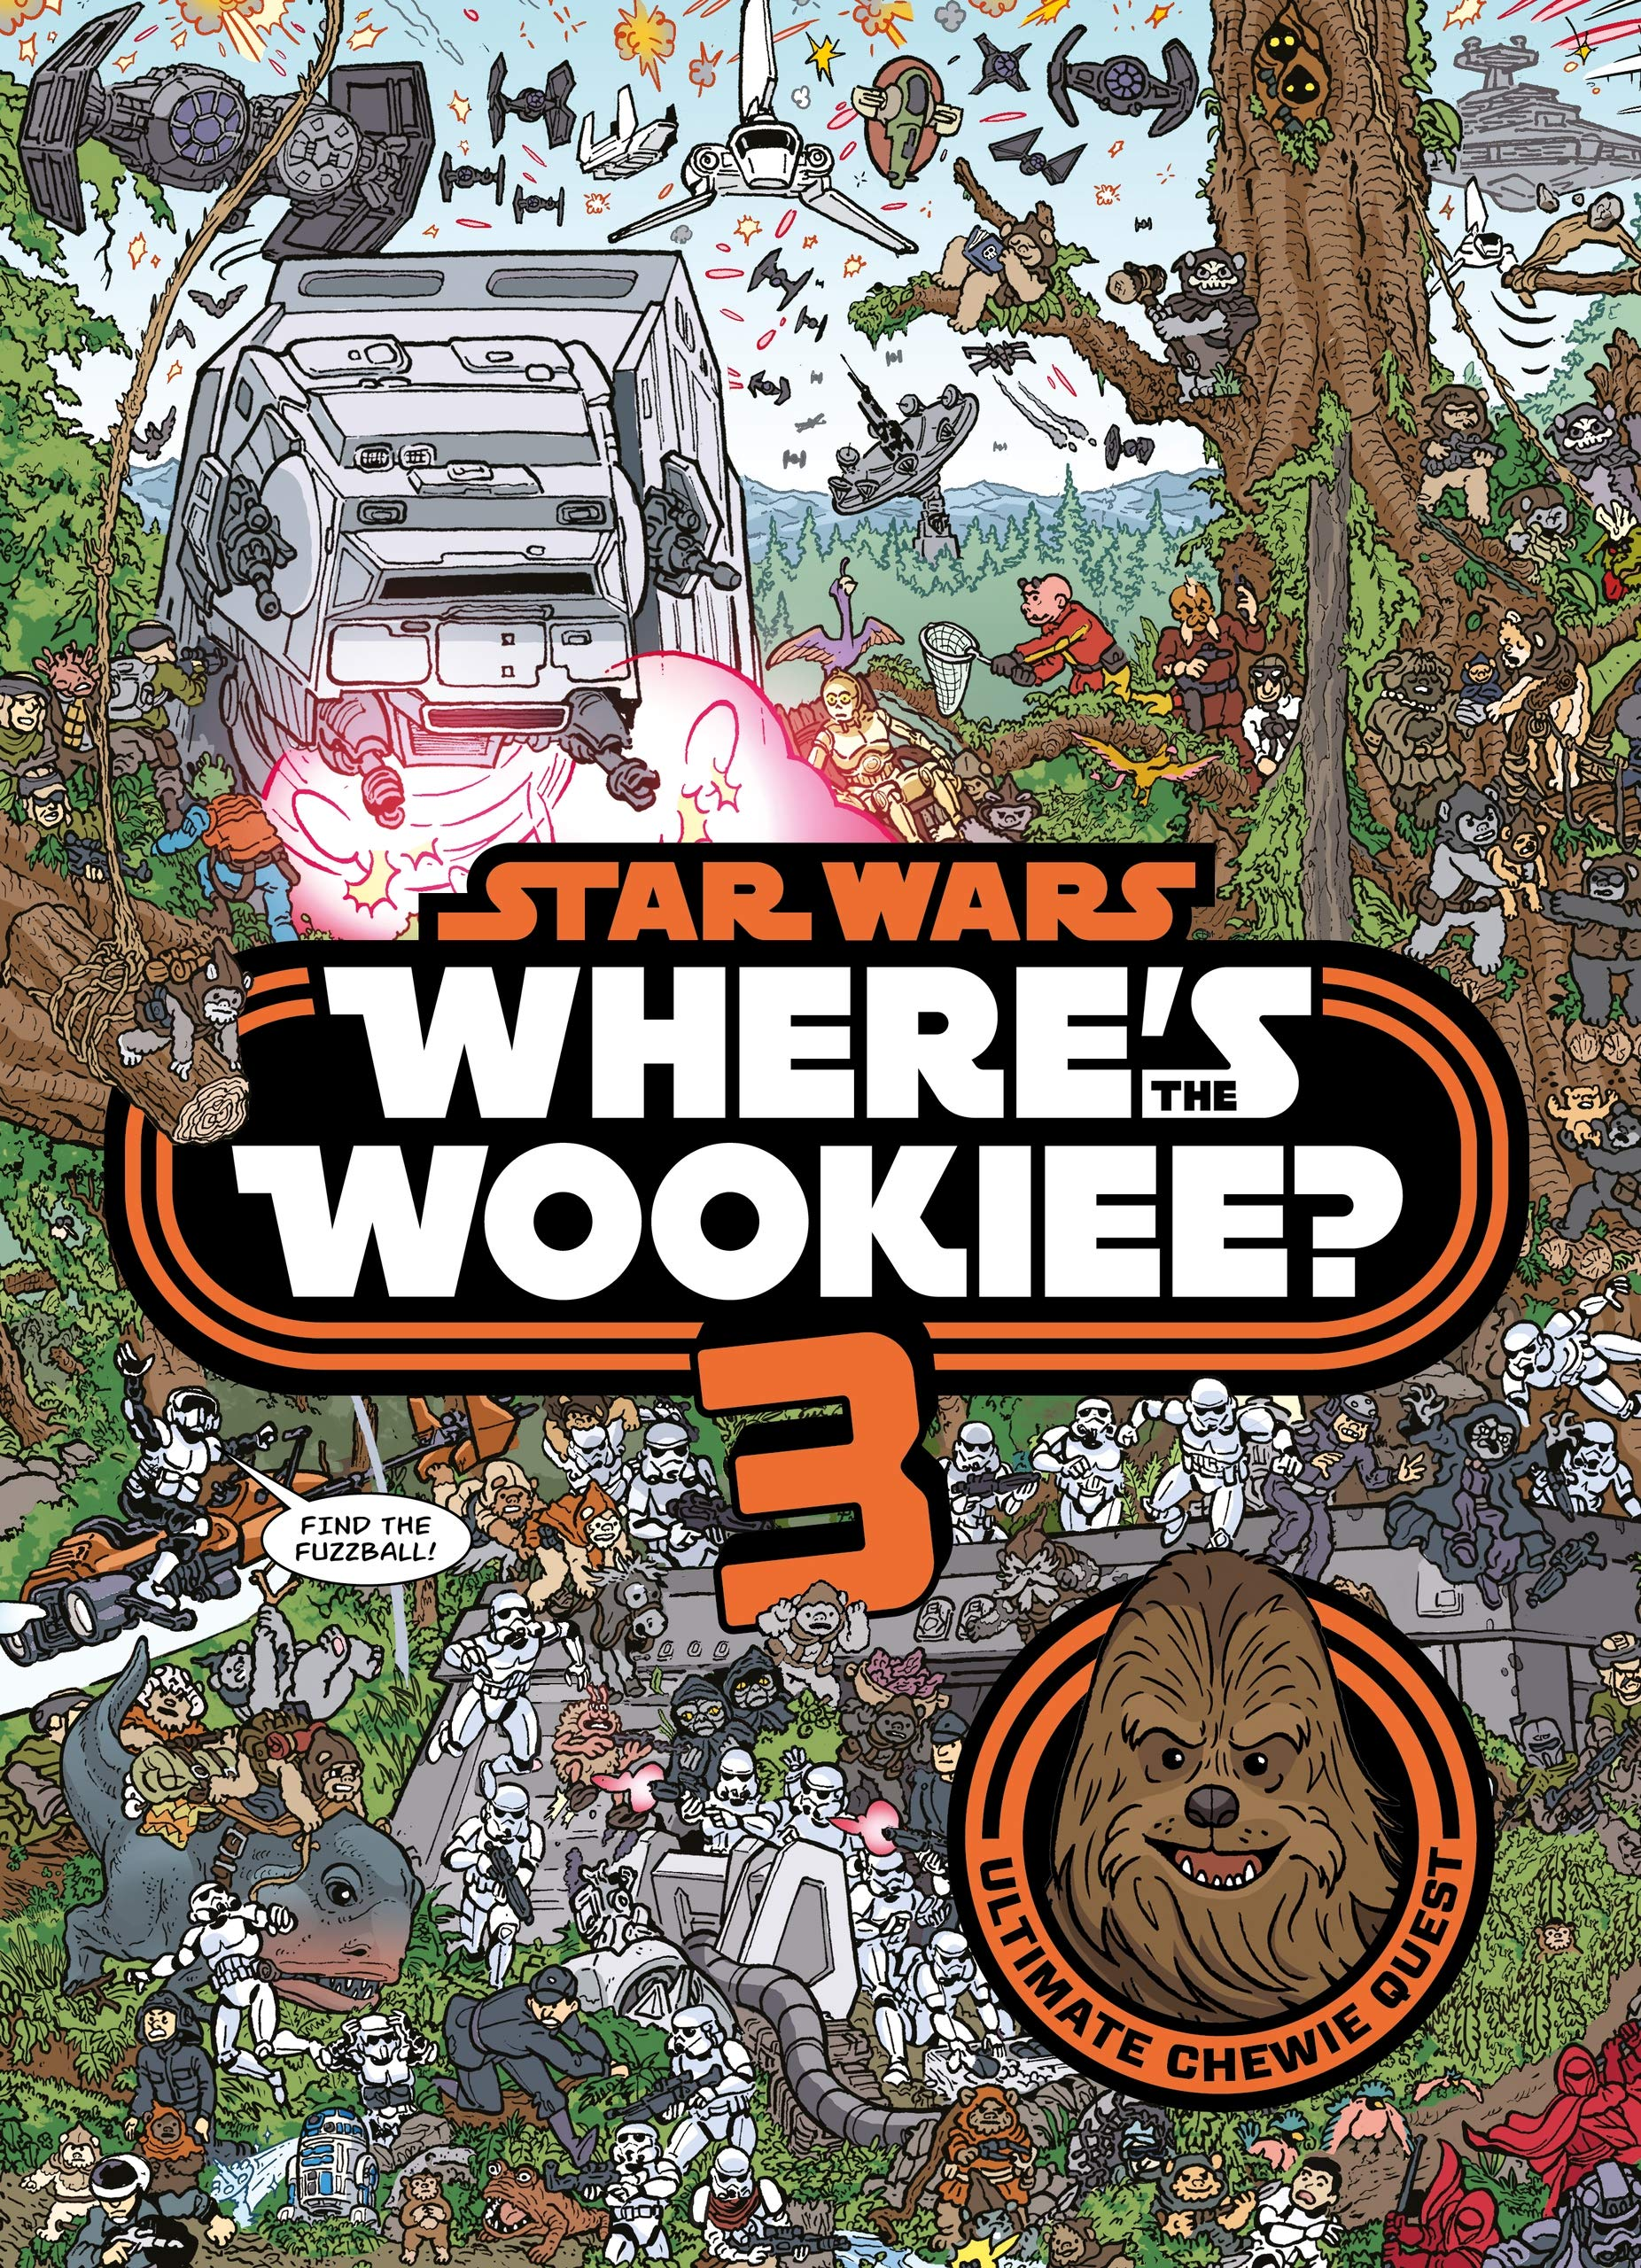 Star Wars  Where Is The Wookiee 3  Star Wars Activity Books